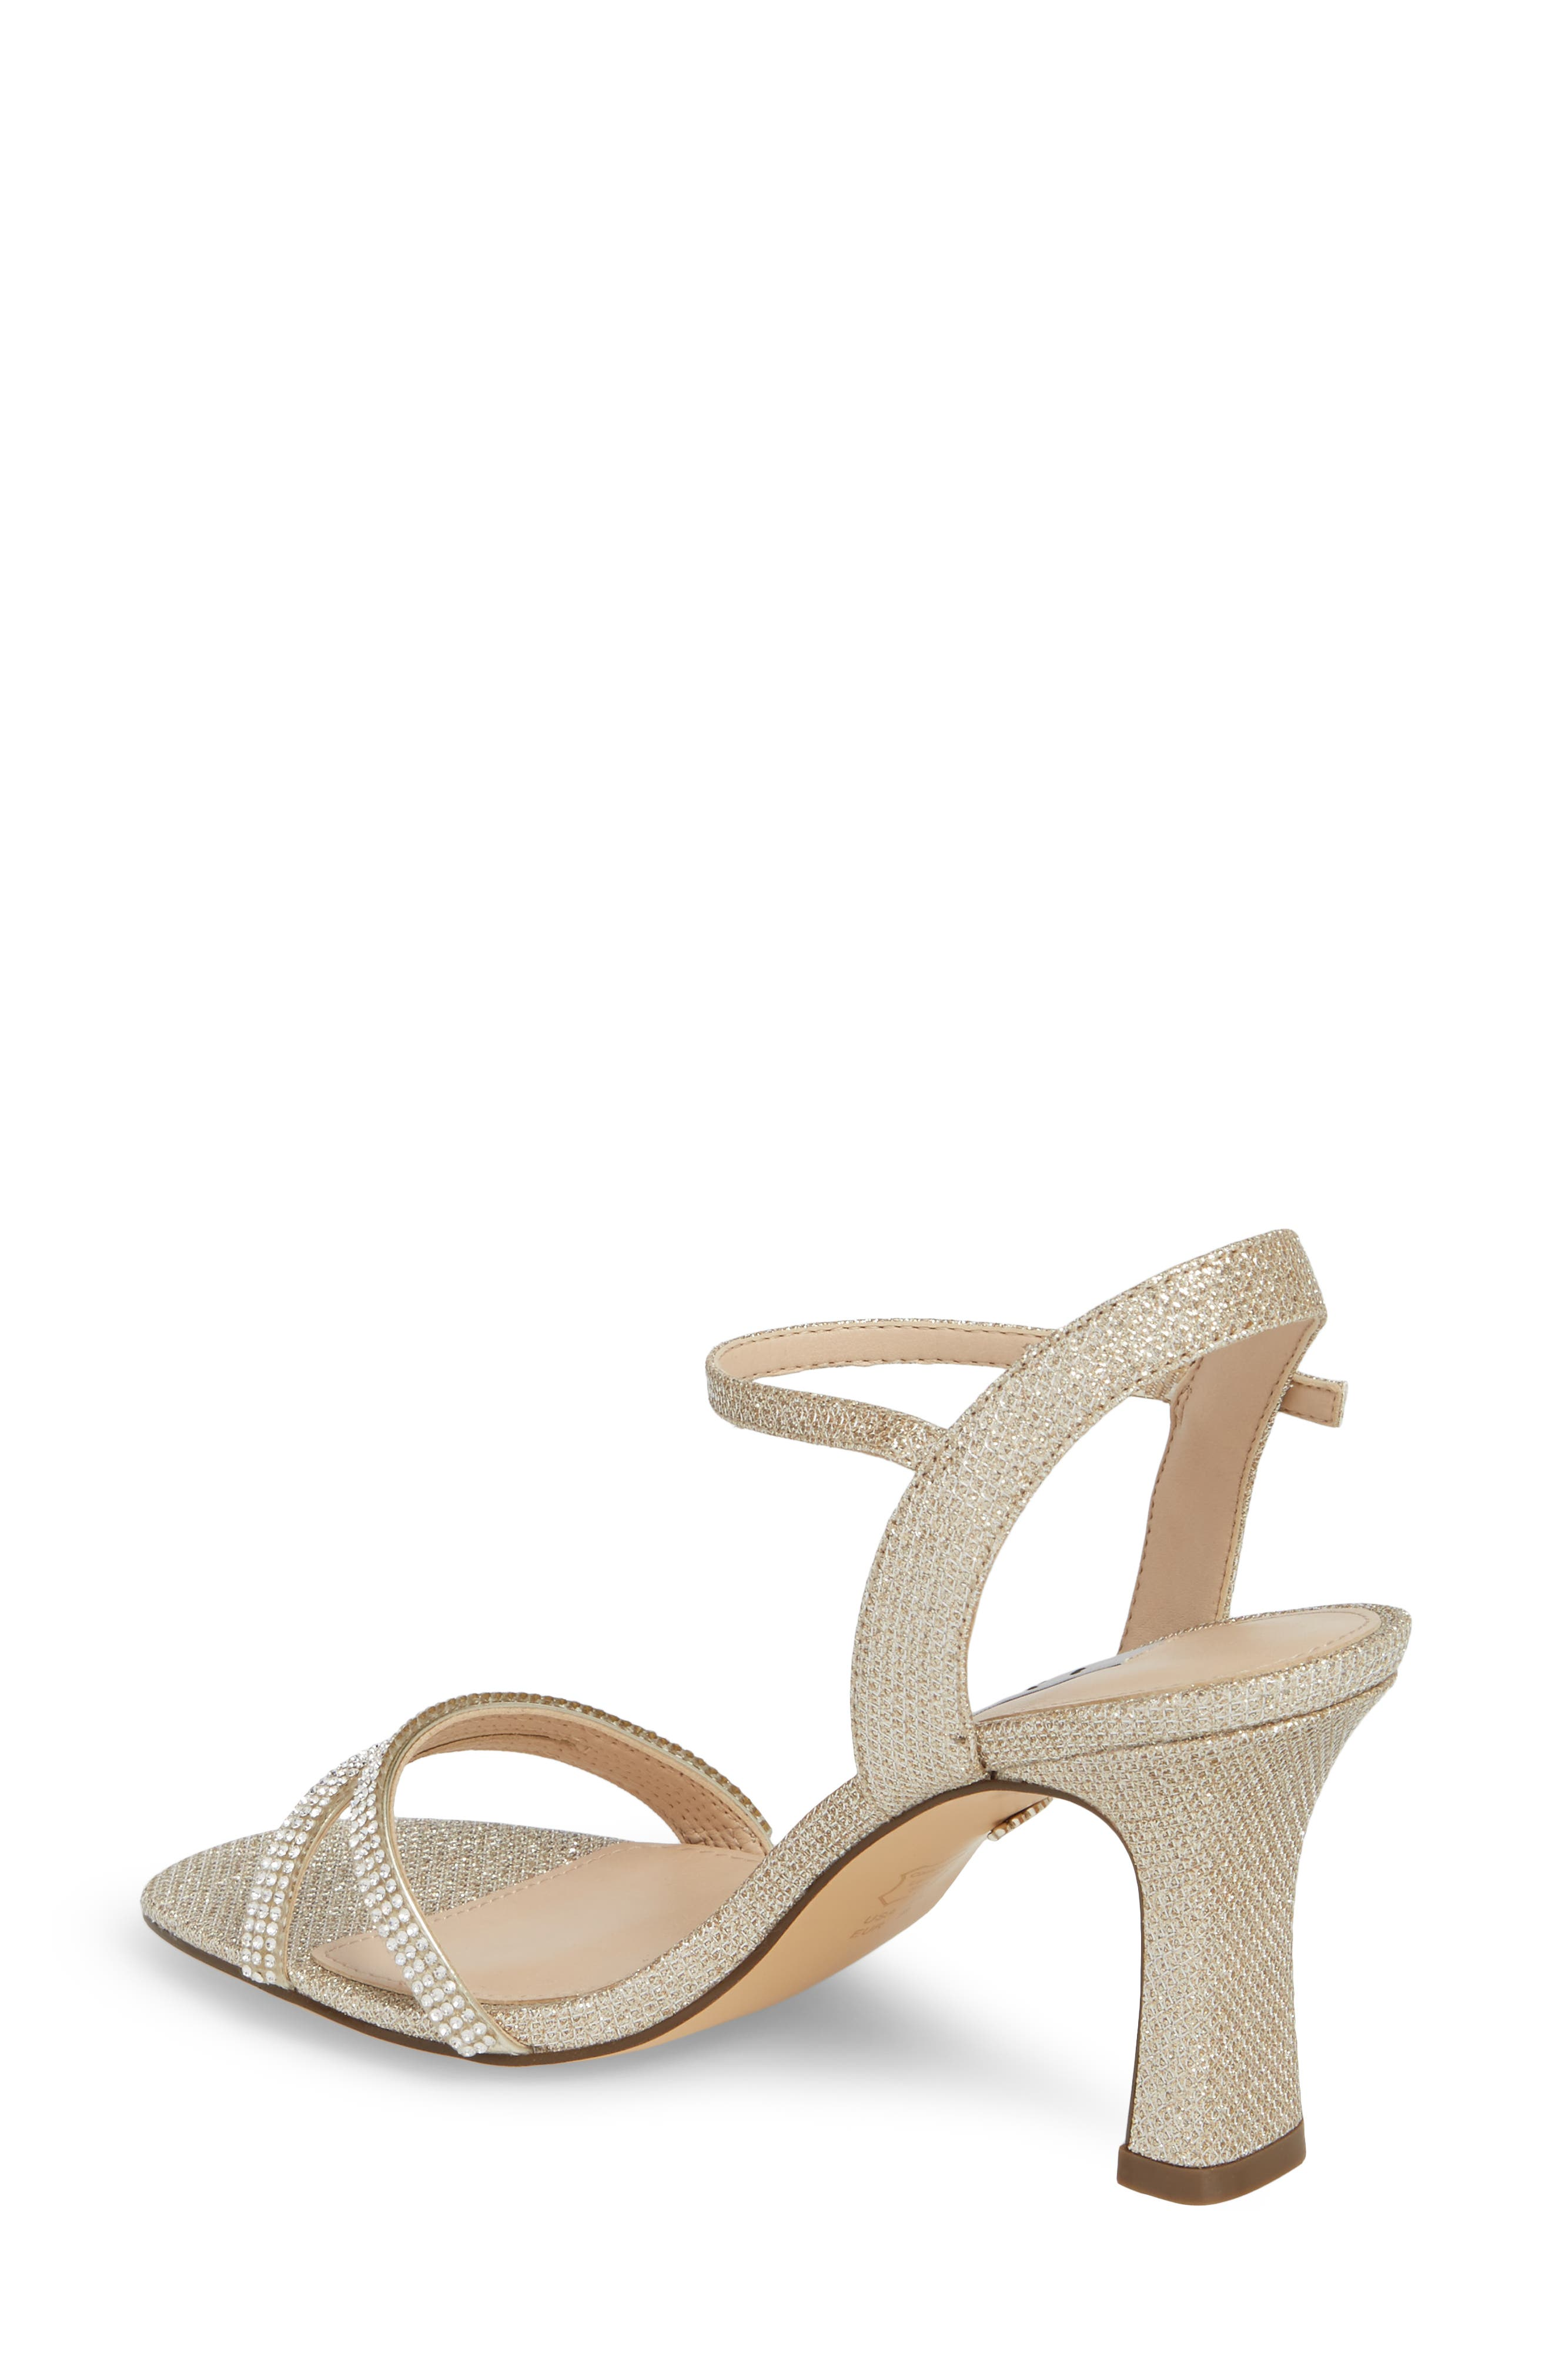 Avalon Ankle Strap Sandal,                             Alternate thumbnail 6, color,